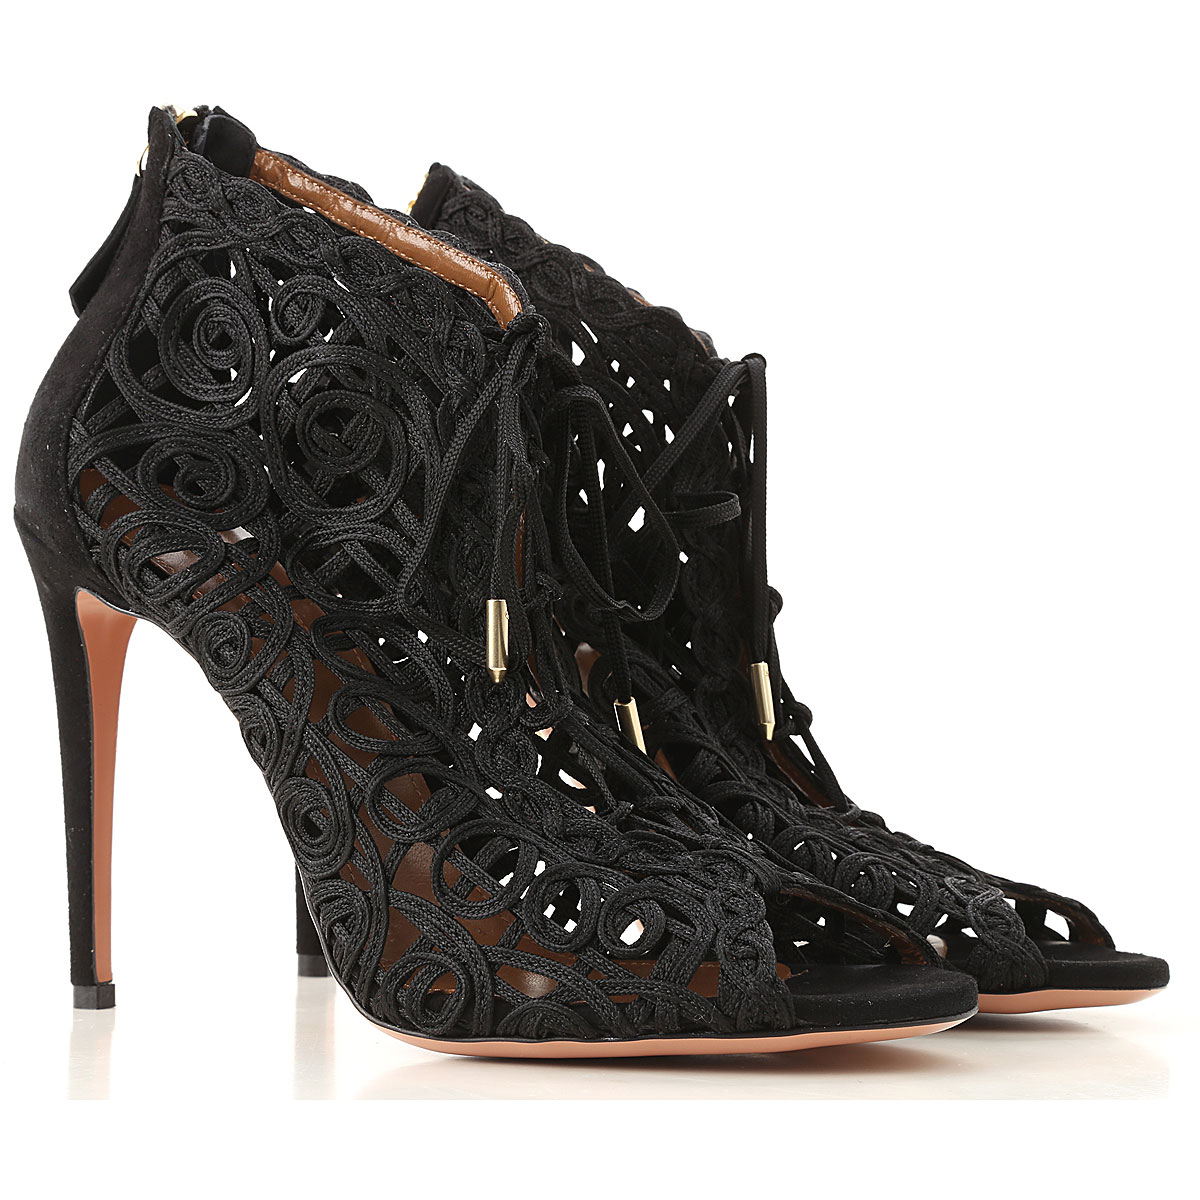 Aquazzura Boots moterims, Booties  in Outlet, juodi, oda, 2019, 39 39.5 40.5